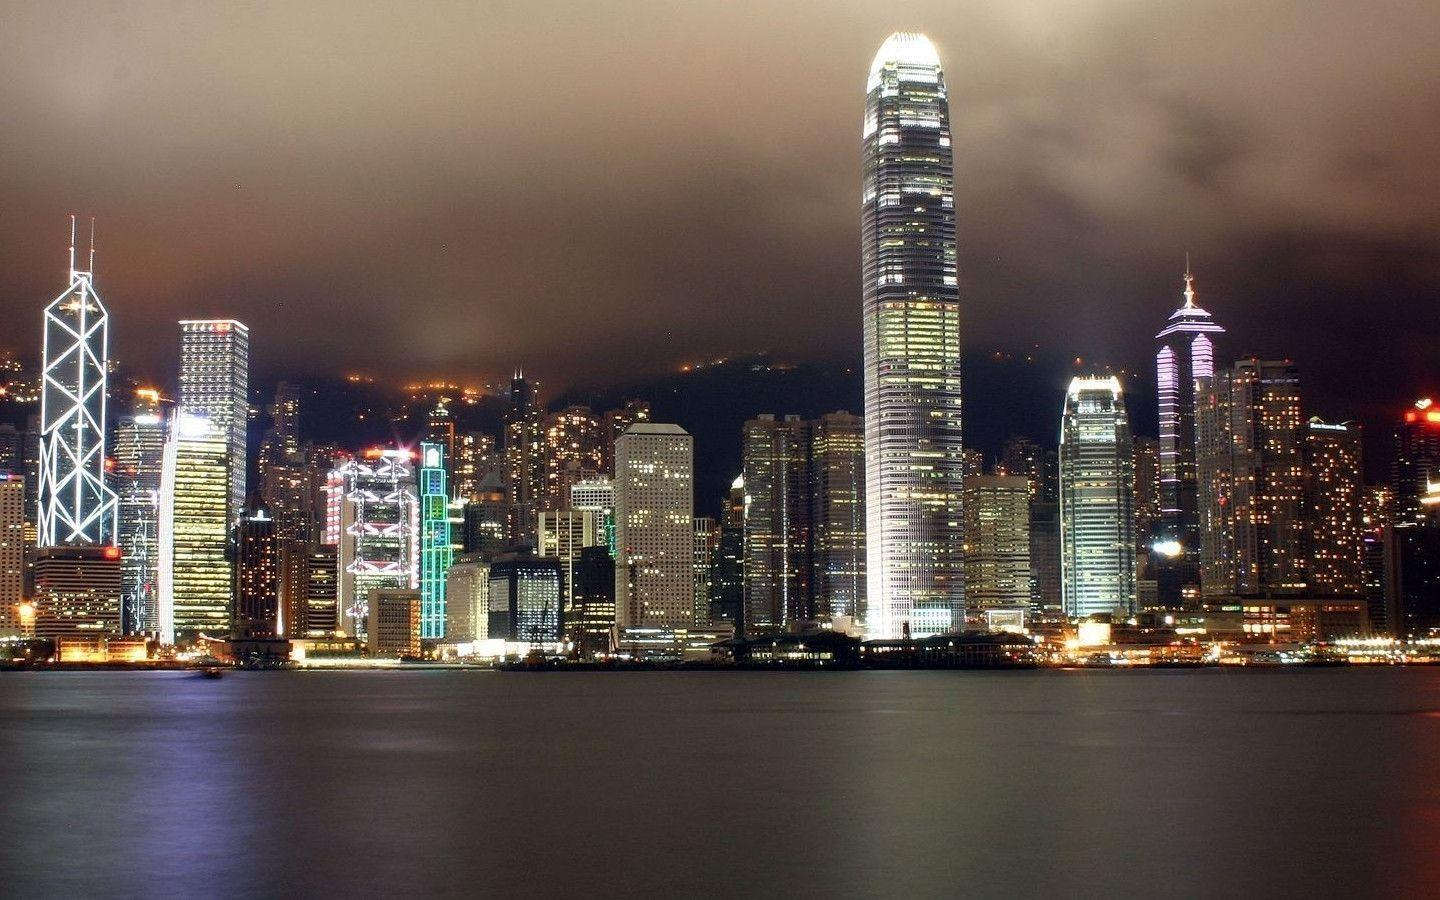 Hong Kong City Night MacBook Pro wallpapers